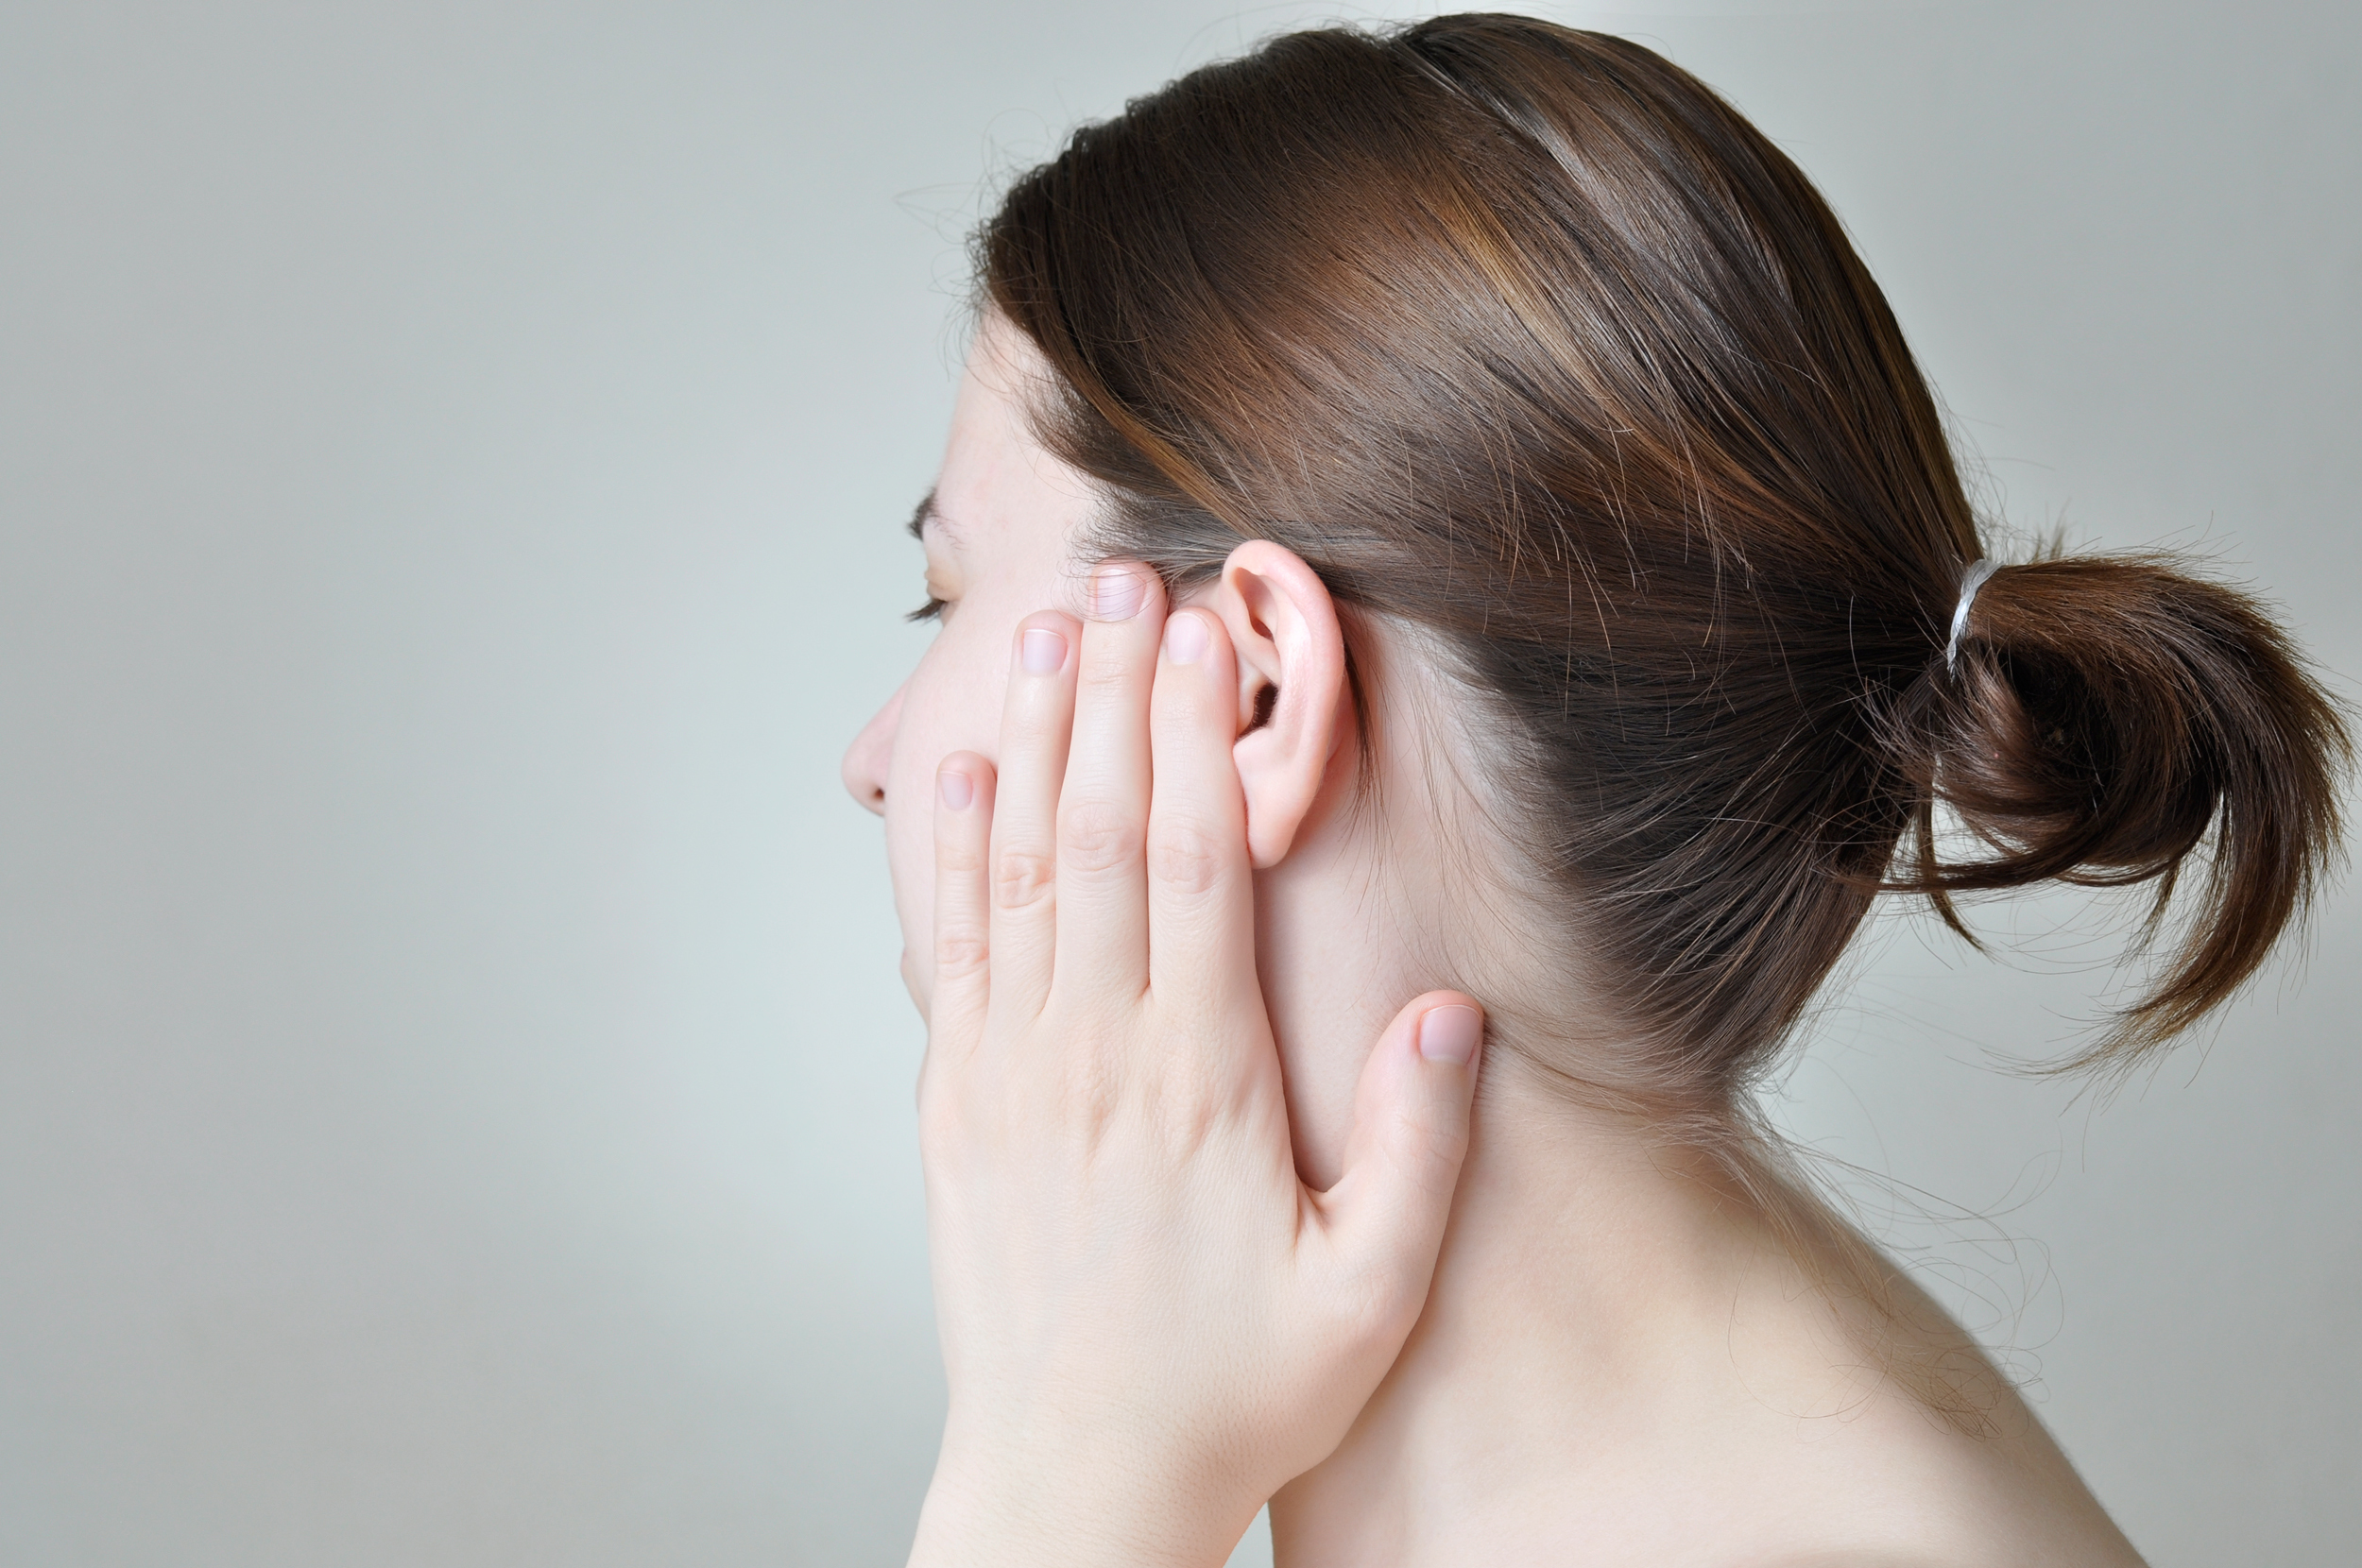 Why Do My Ears Keep Ringing? 10 Tinnitus Causes & Treatments | Buoy